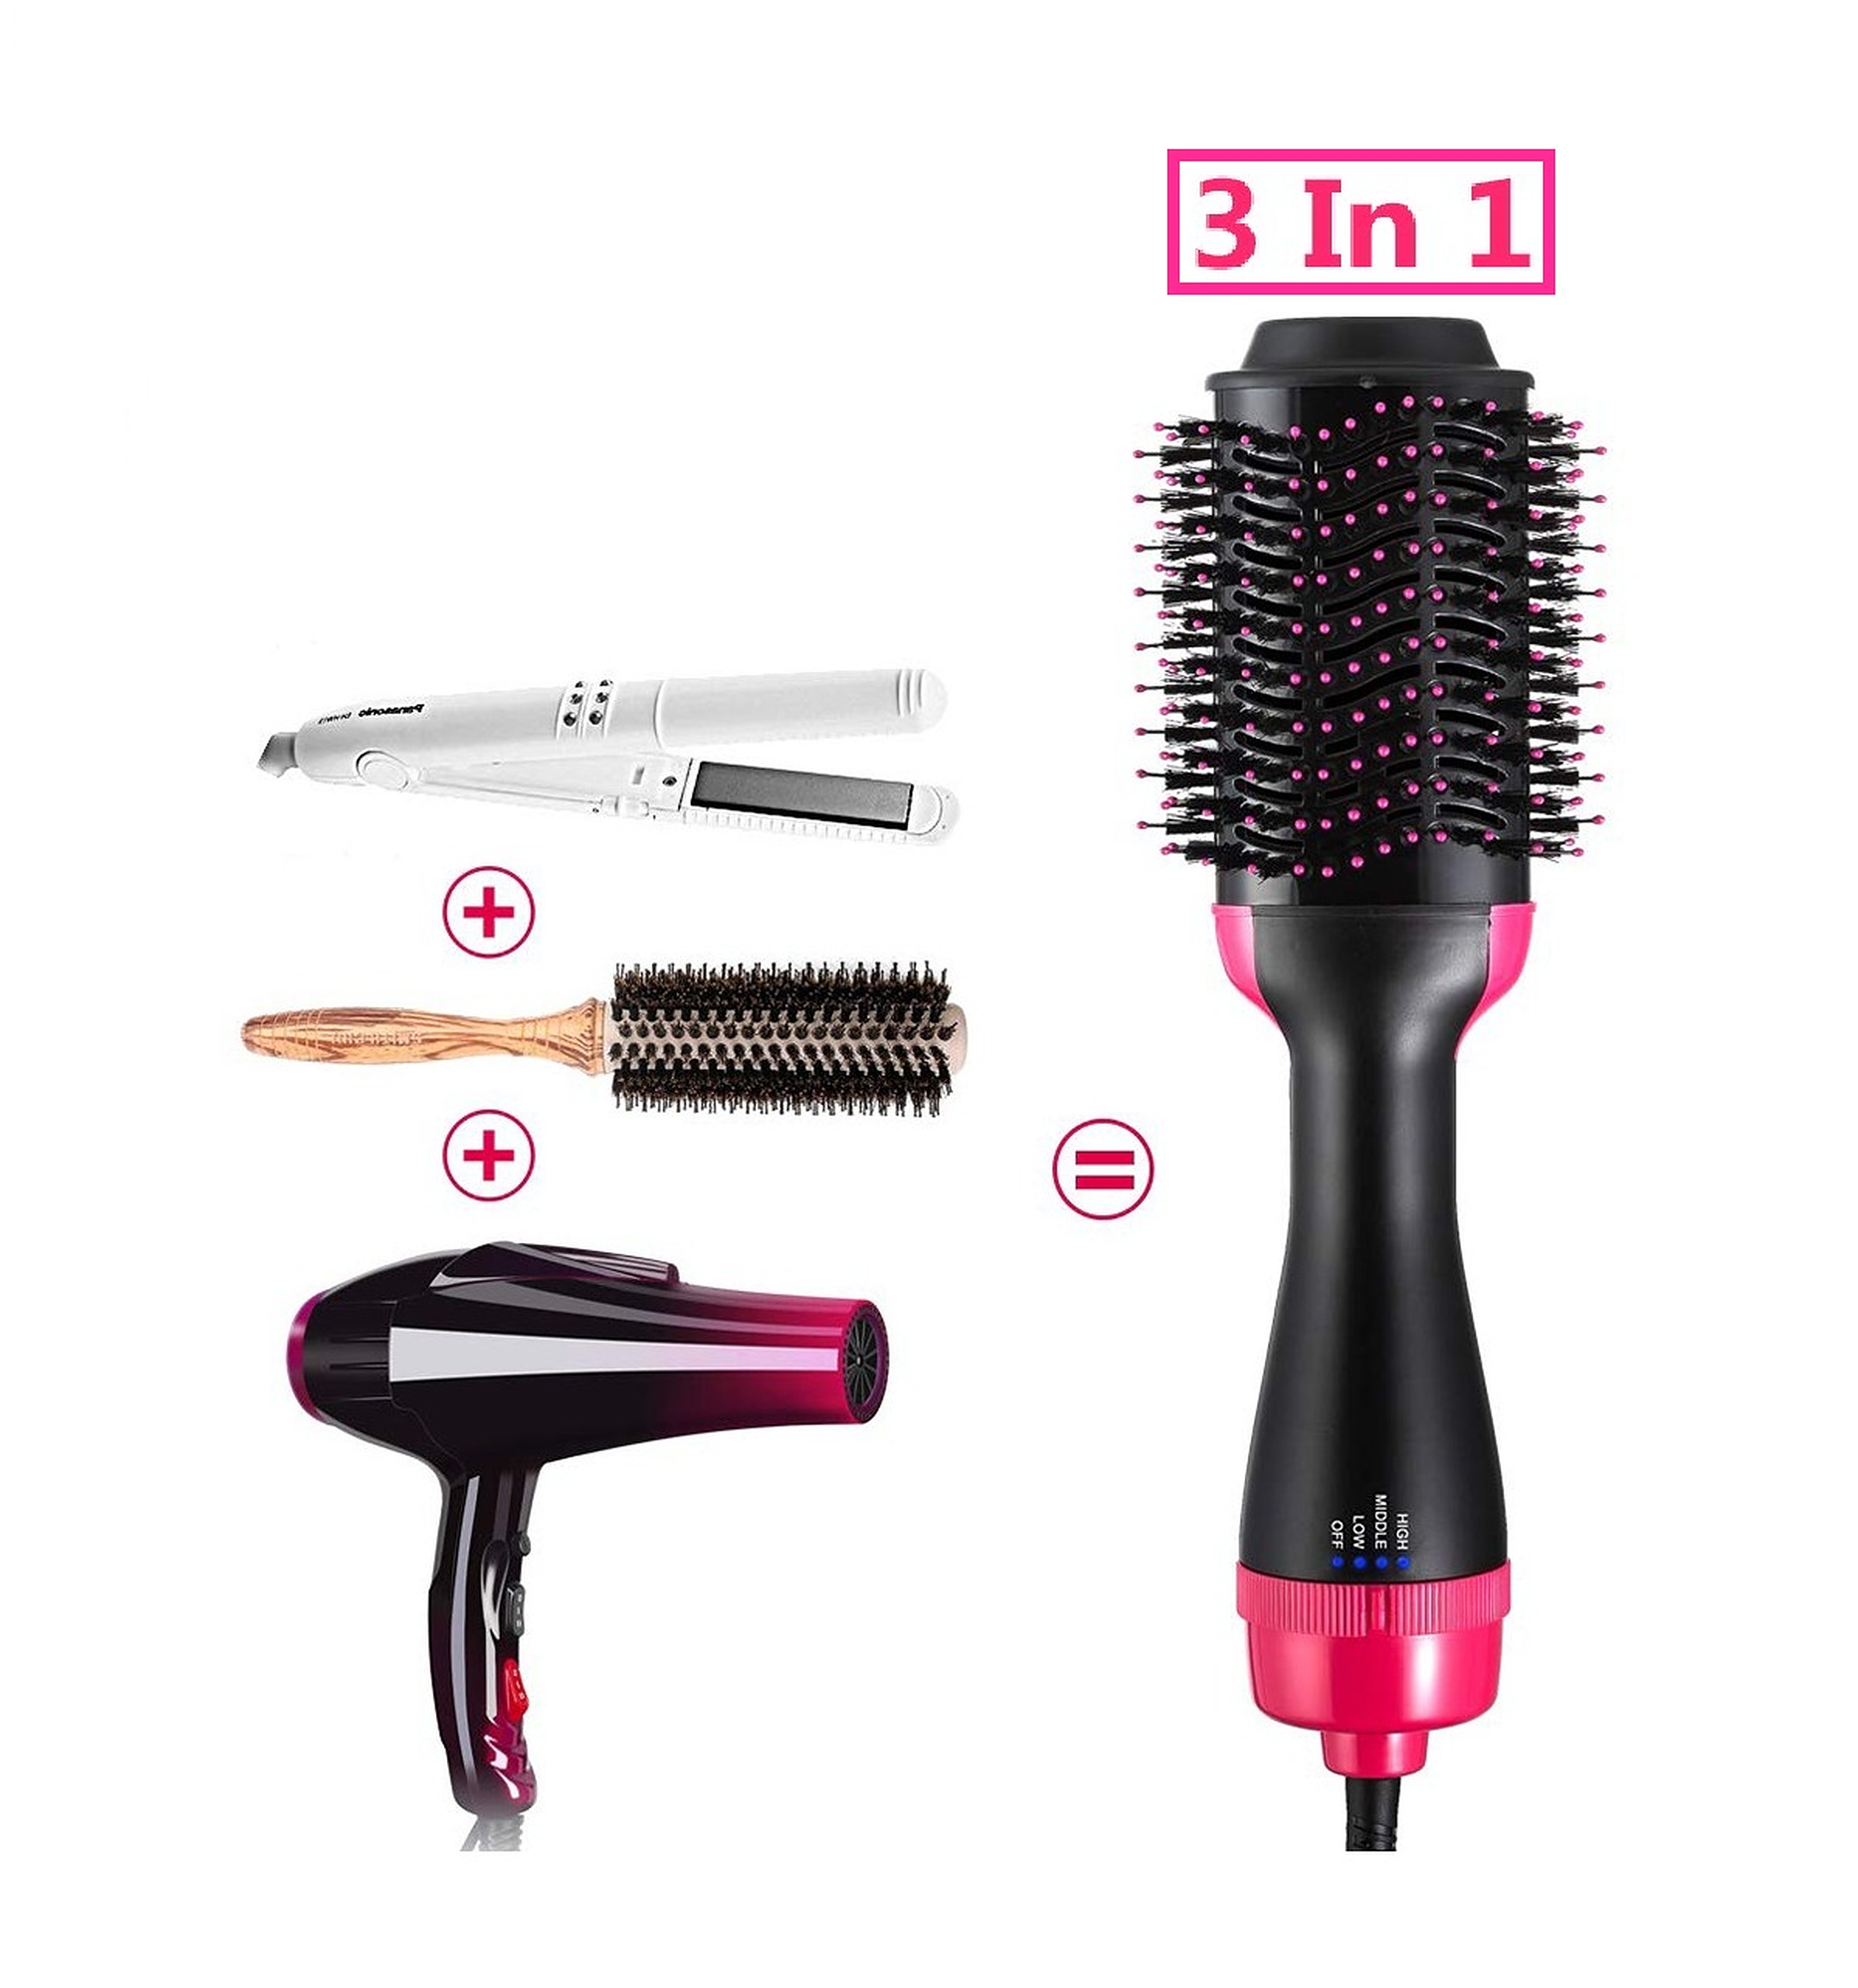 【ON SALE AT 60%OFF】ONE-STEP HAIR DRYER & VOLUMIZER (2 IN 1) - Buy 2 GET 10%OFF & FREE SHIPPING